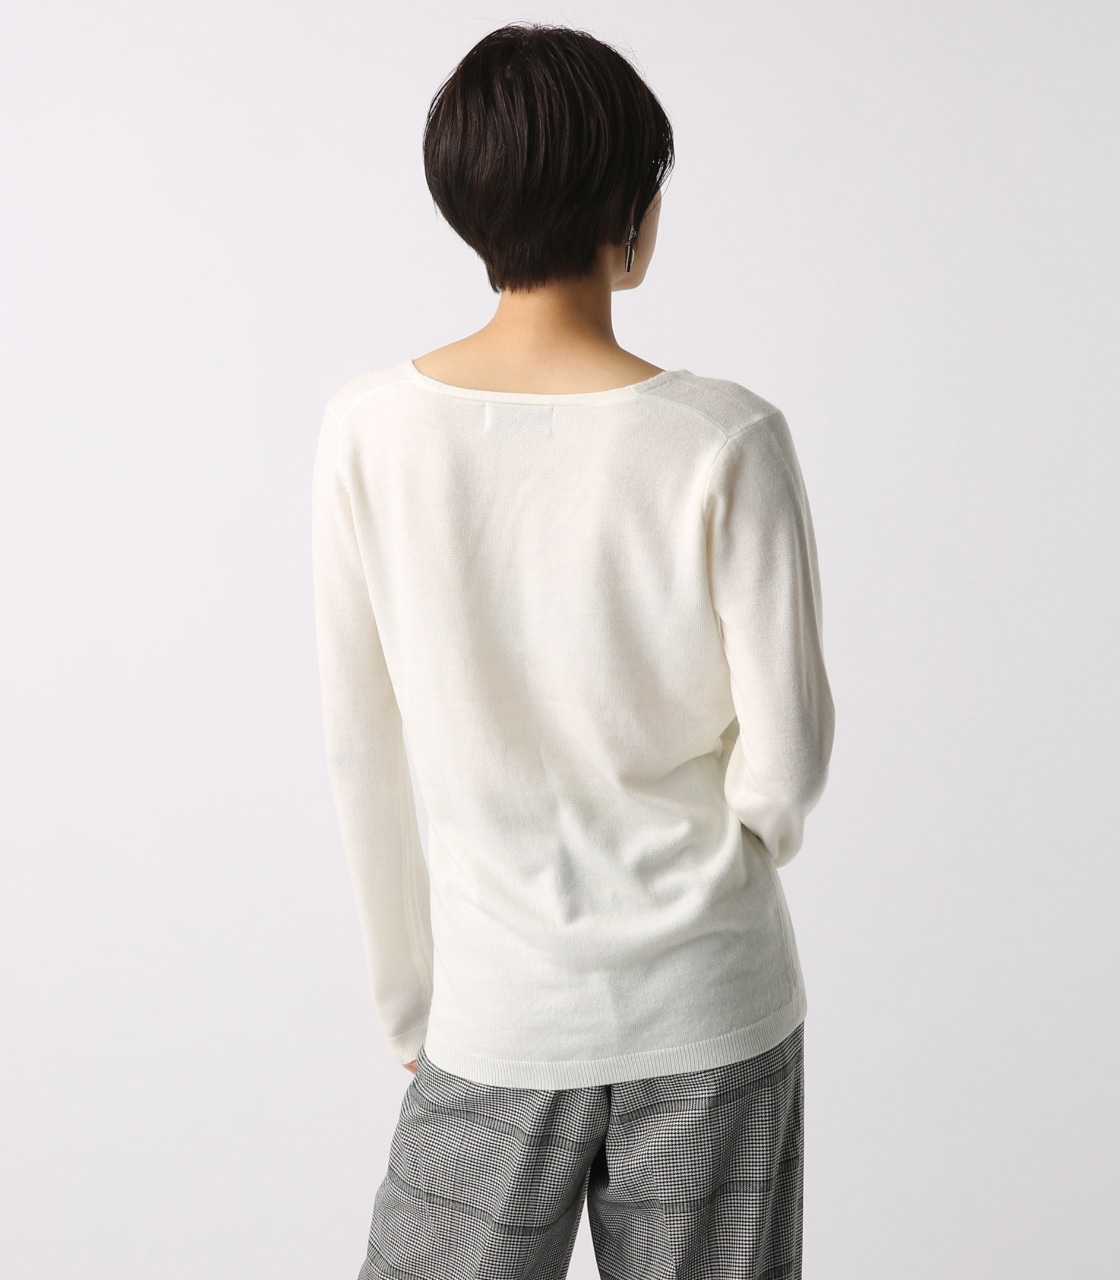 【AZUL BY MOUSSY】ウォッシャブルソフトタッチVネック長袖プルオーバー [MOOK掲載]  97011 詳細画像 O/WHT 7